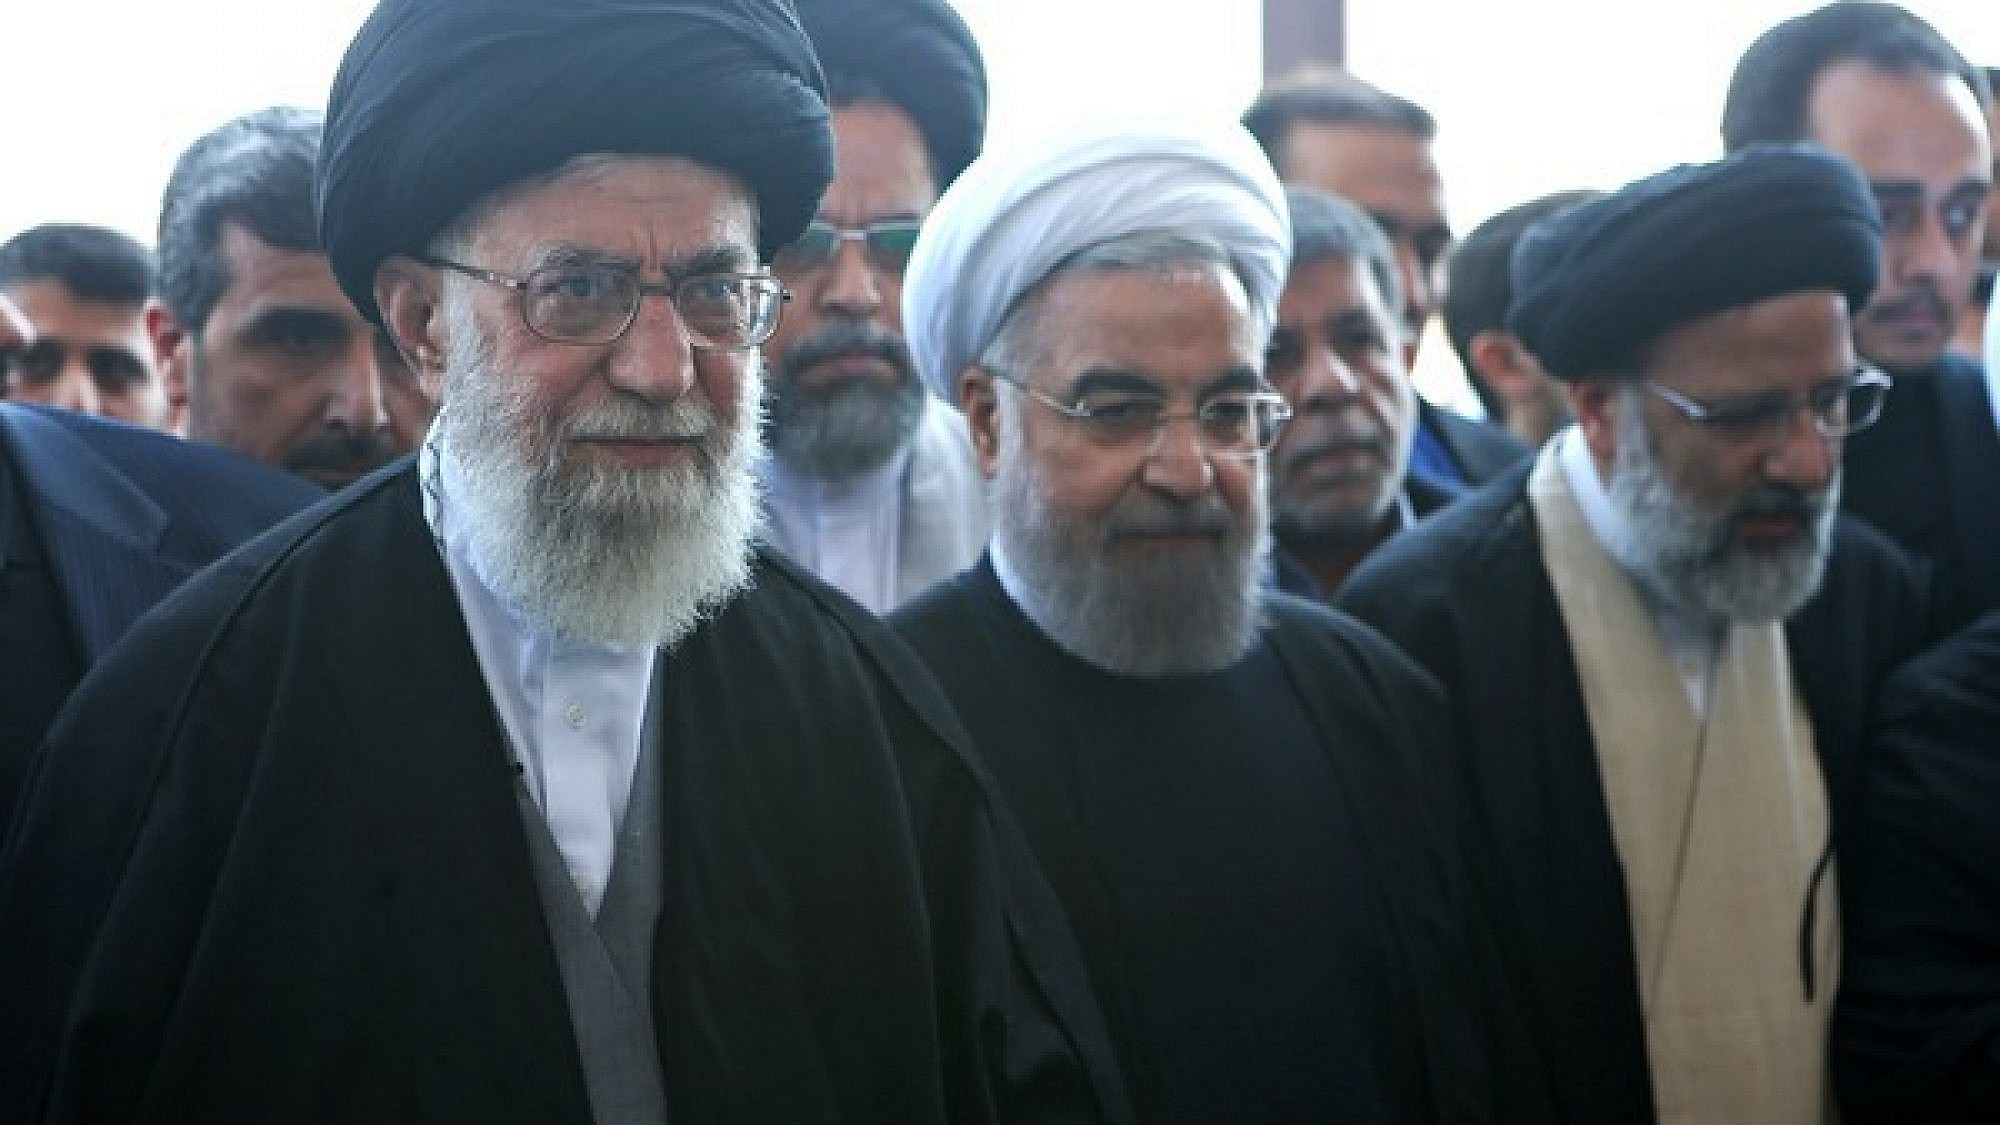 Iranian regime faces most serious threat in 40 years as ...